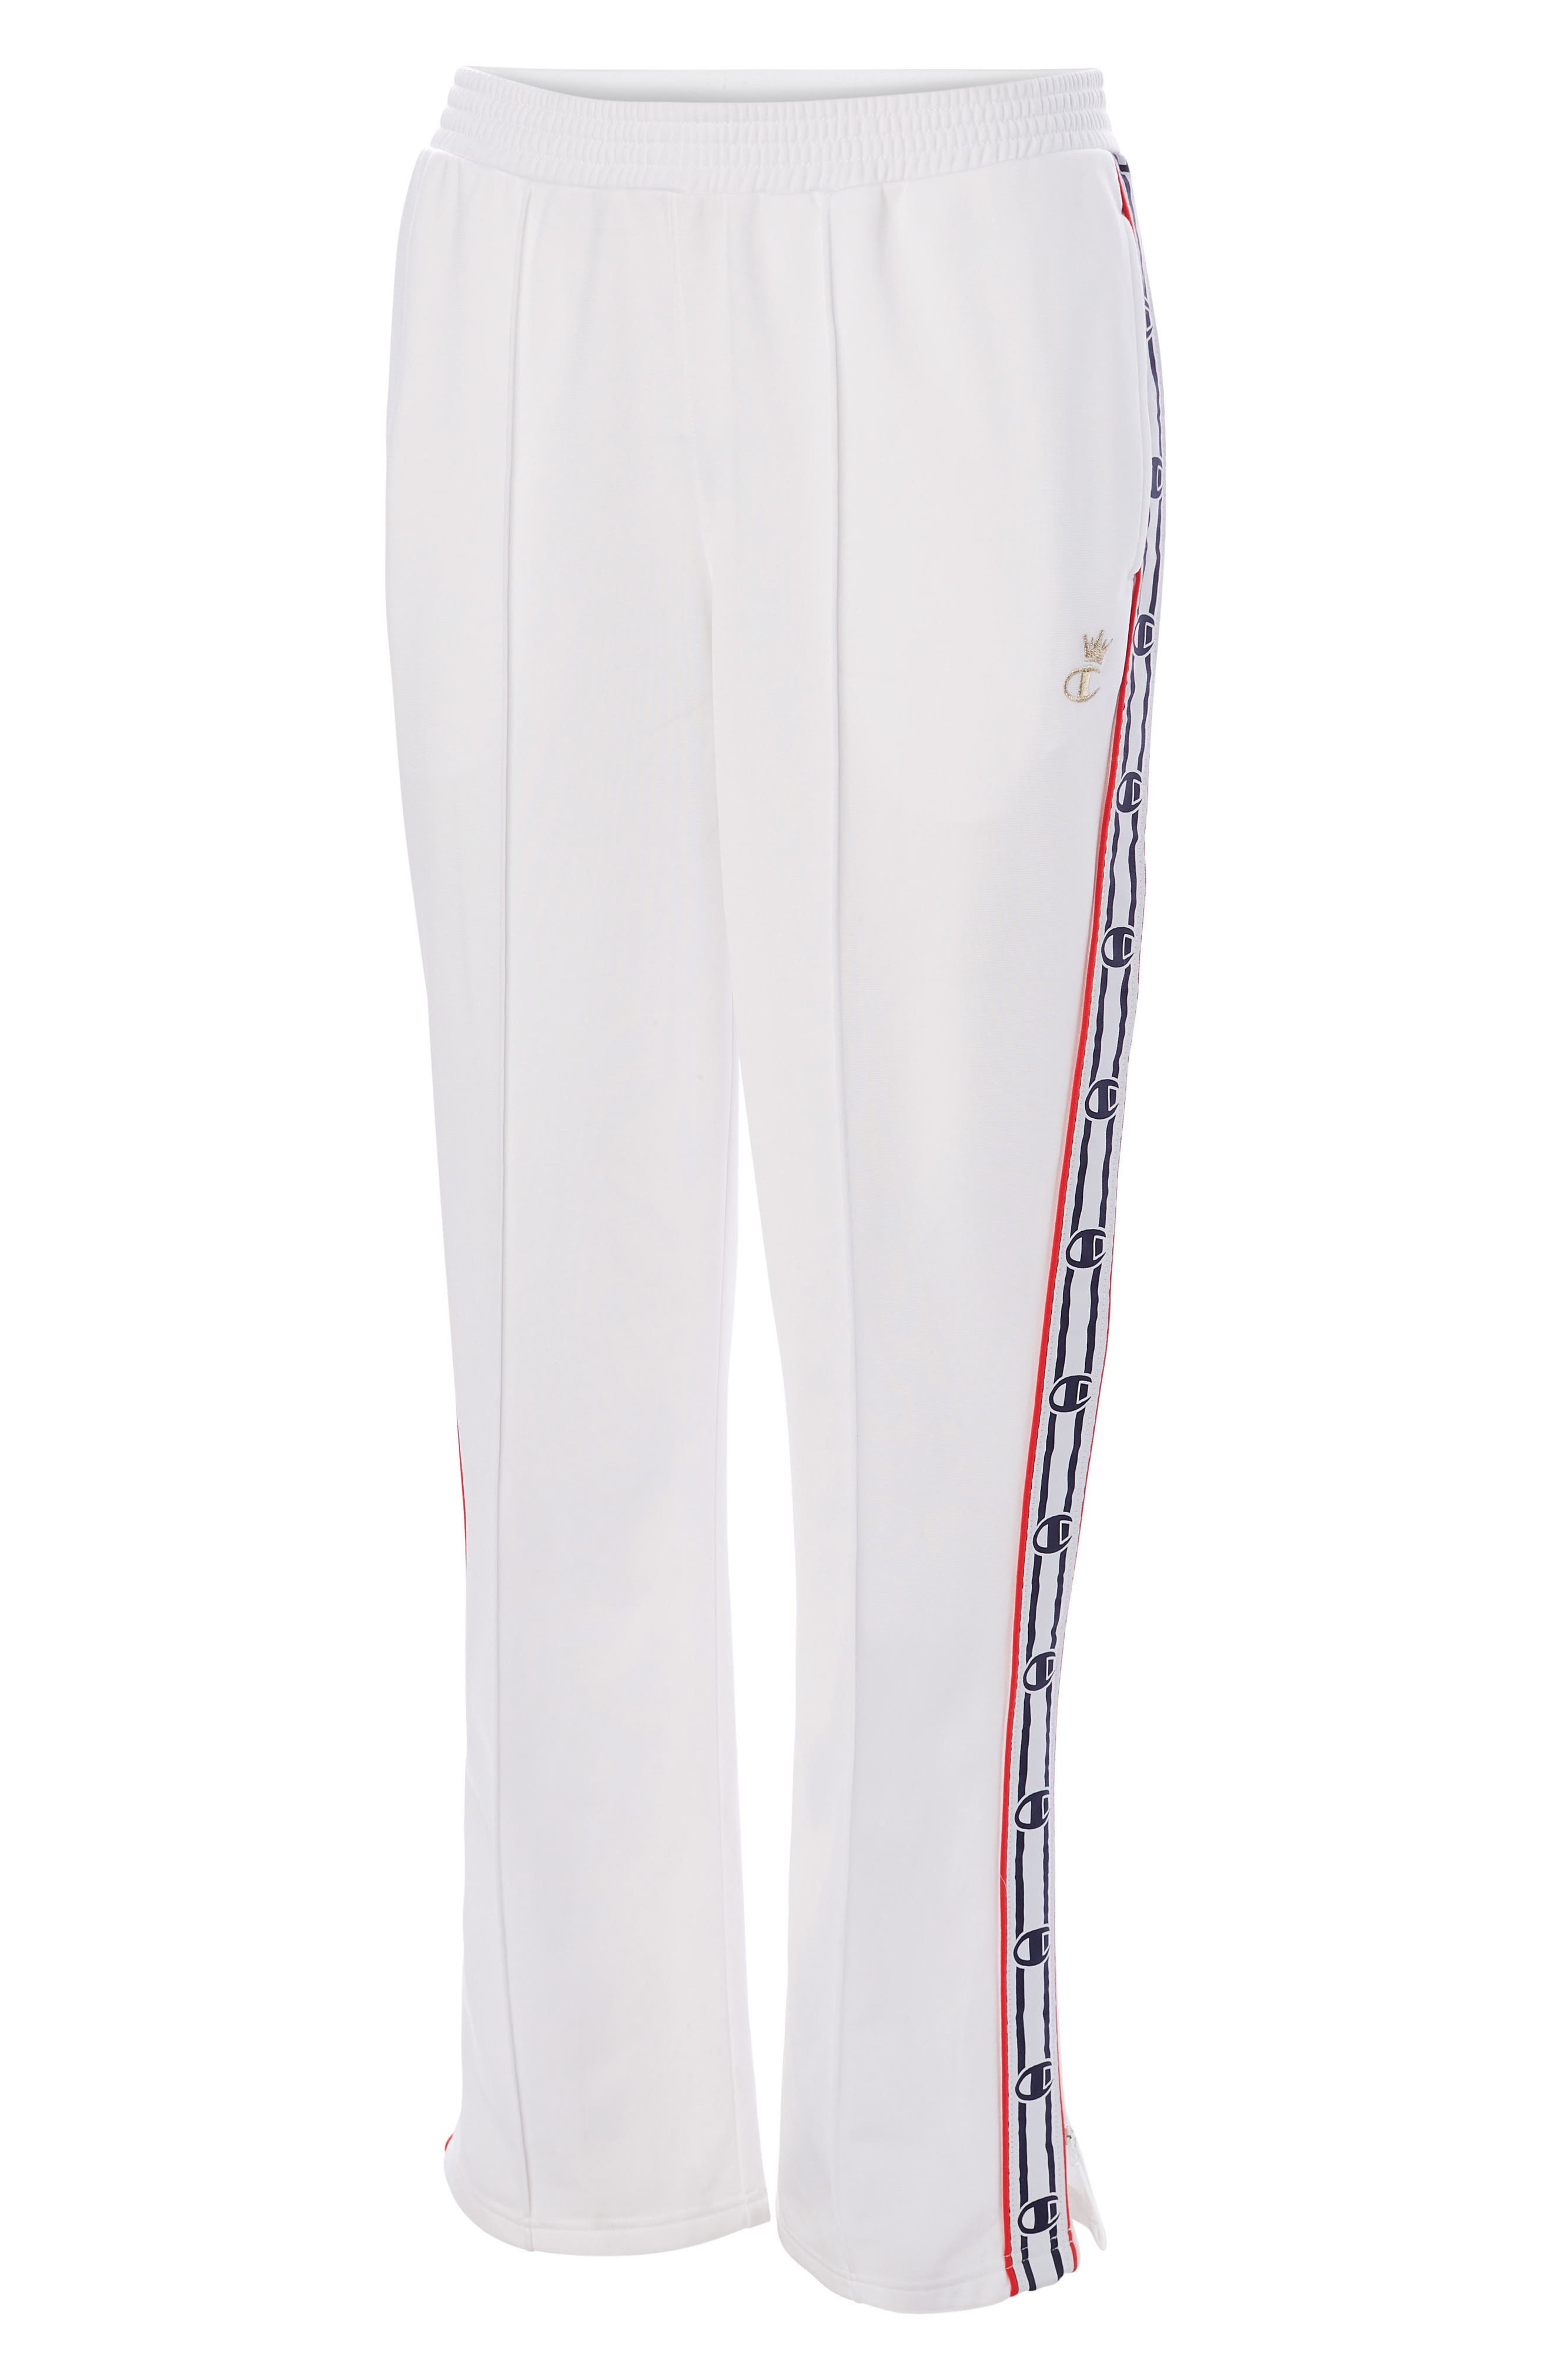 CHAMPION, Logo Tape Track Pants, Alternate thumbnail 5, color, WHITE